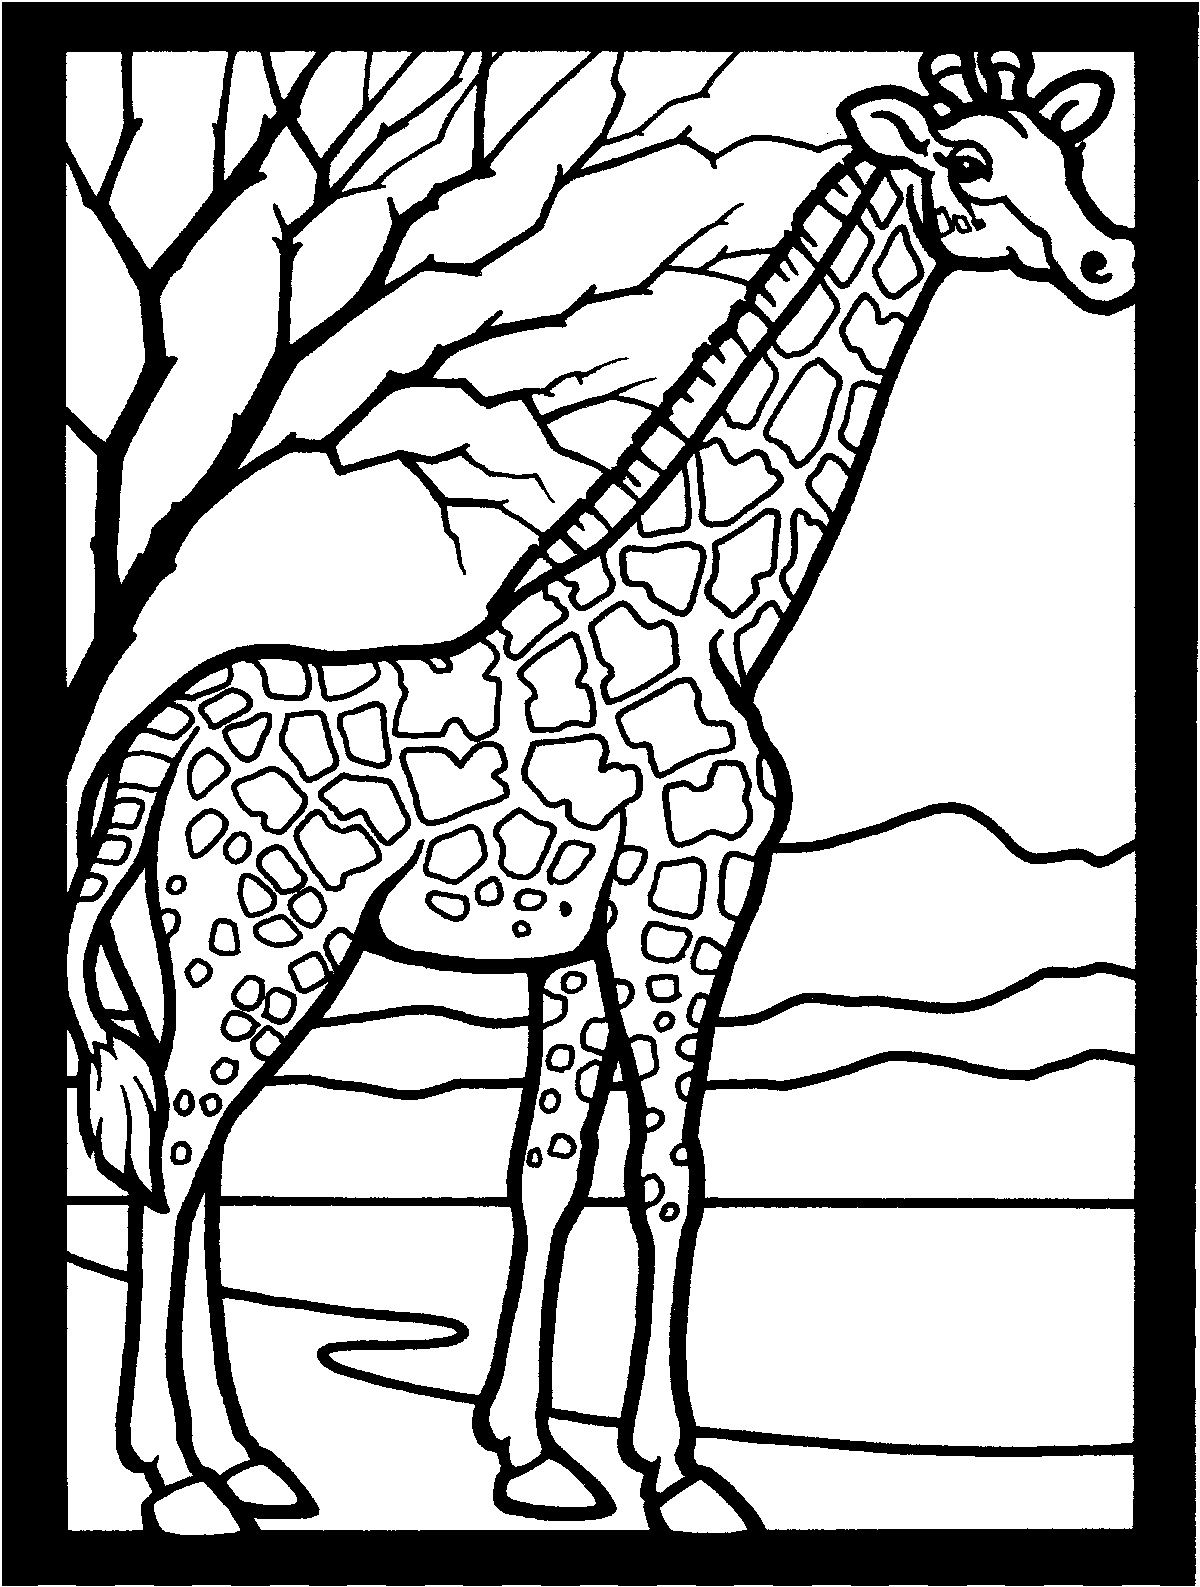 Free Printable Giraffe Coloring Pages For Kids Animal Coloring Pages Giraffe Coloring Pages Giraffe Colors